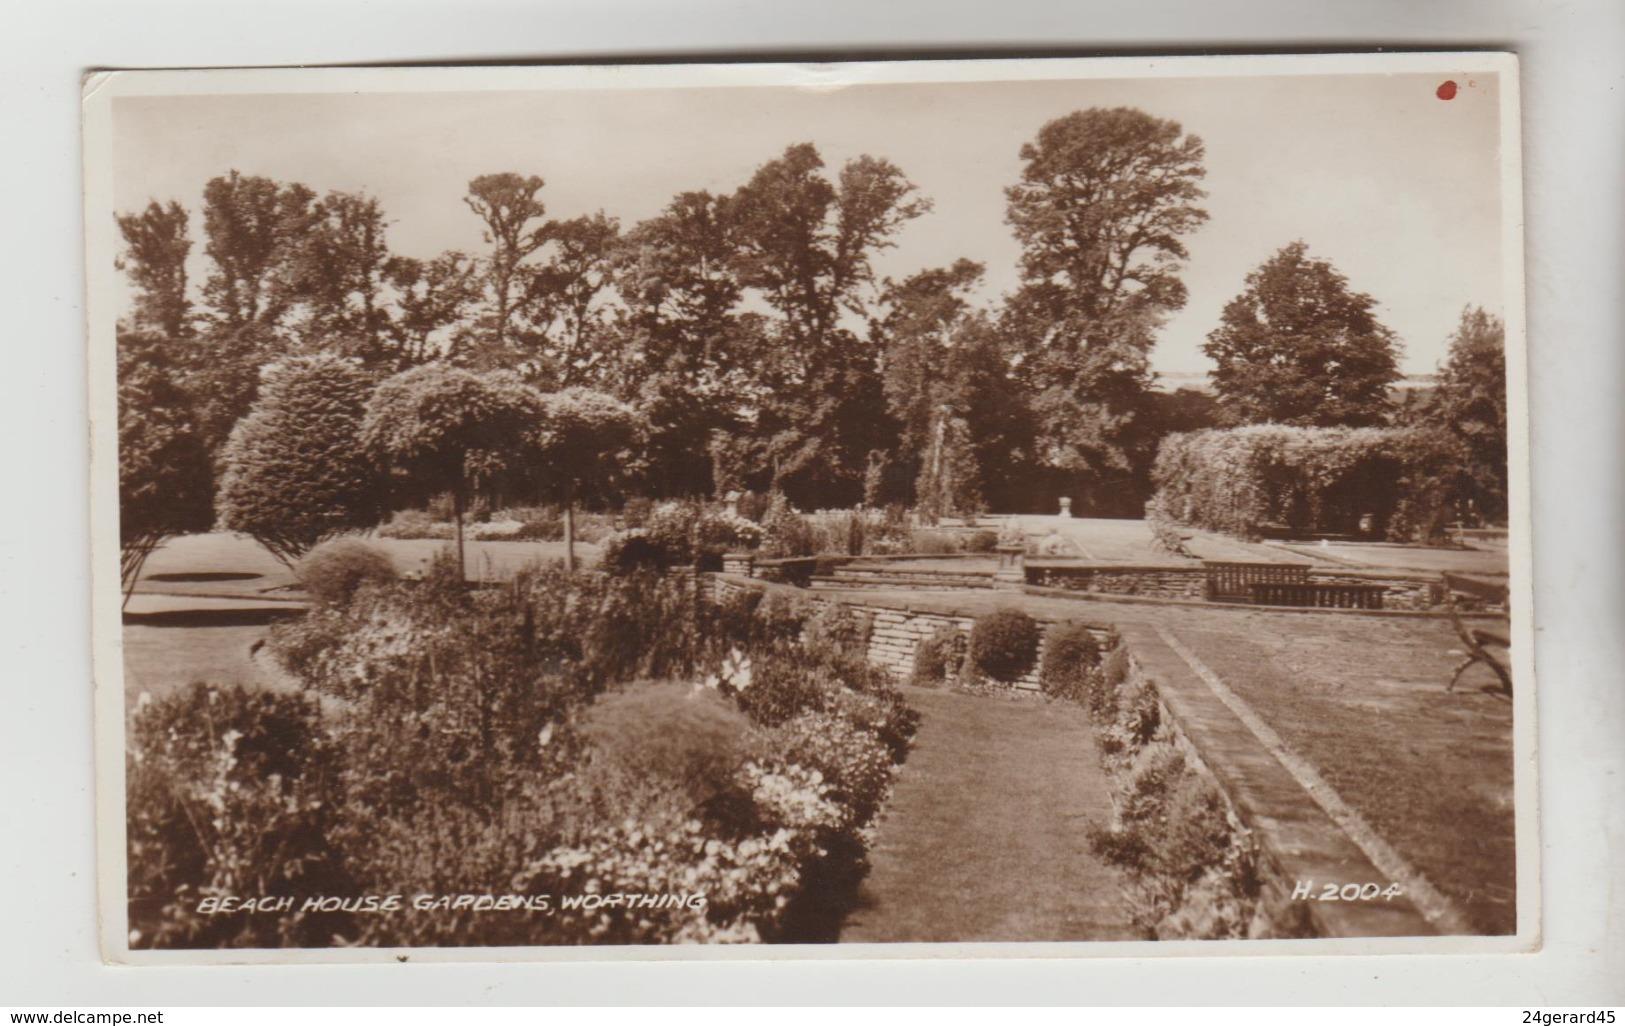 CPSM WORTHING (Angleterre-Sussex) - Beach House Gardens - Worthing